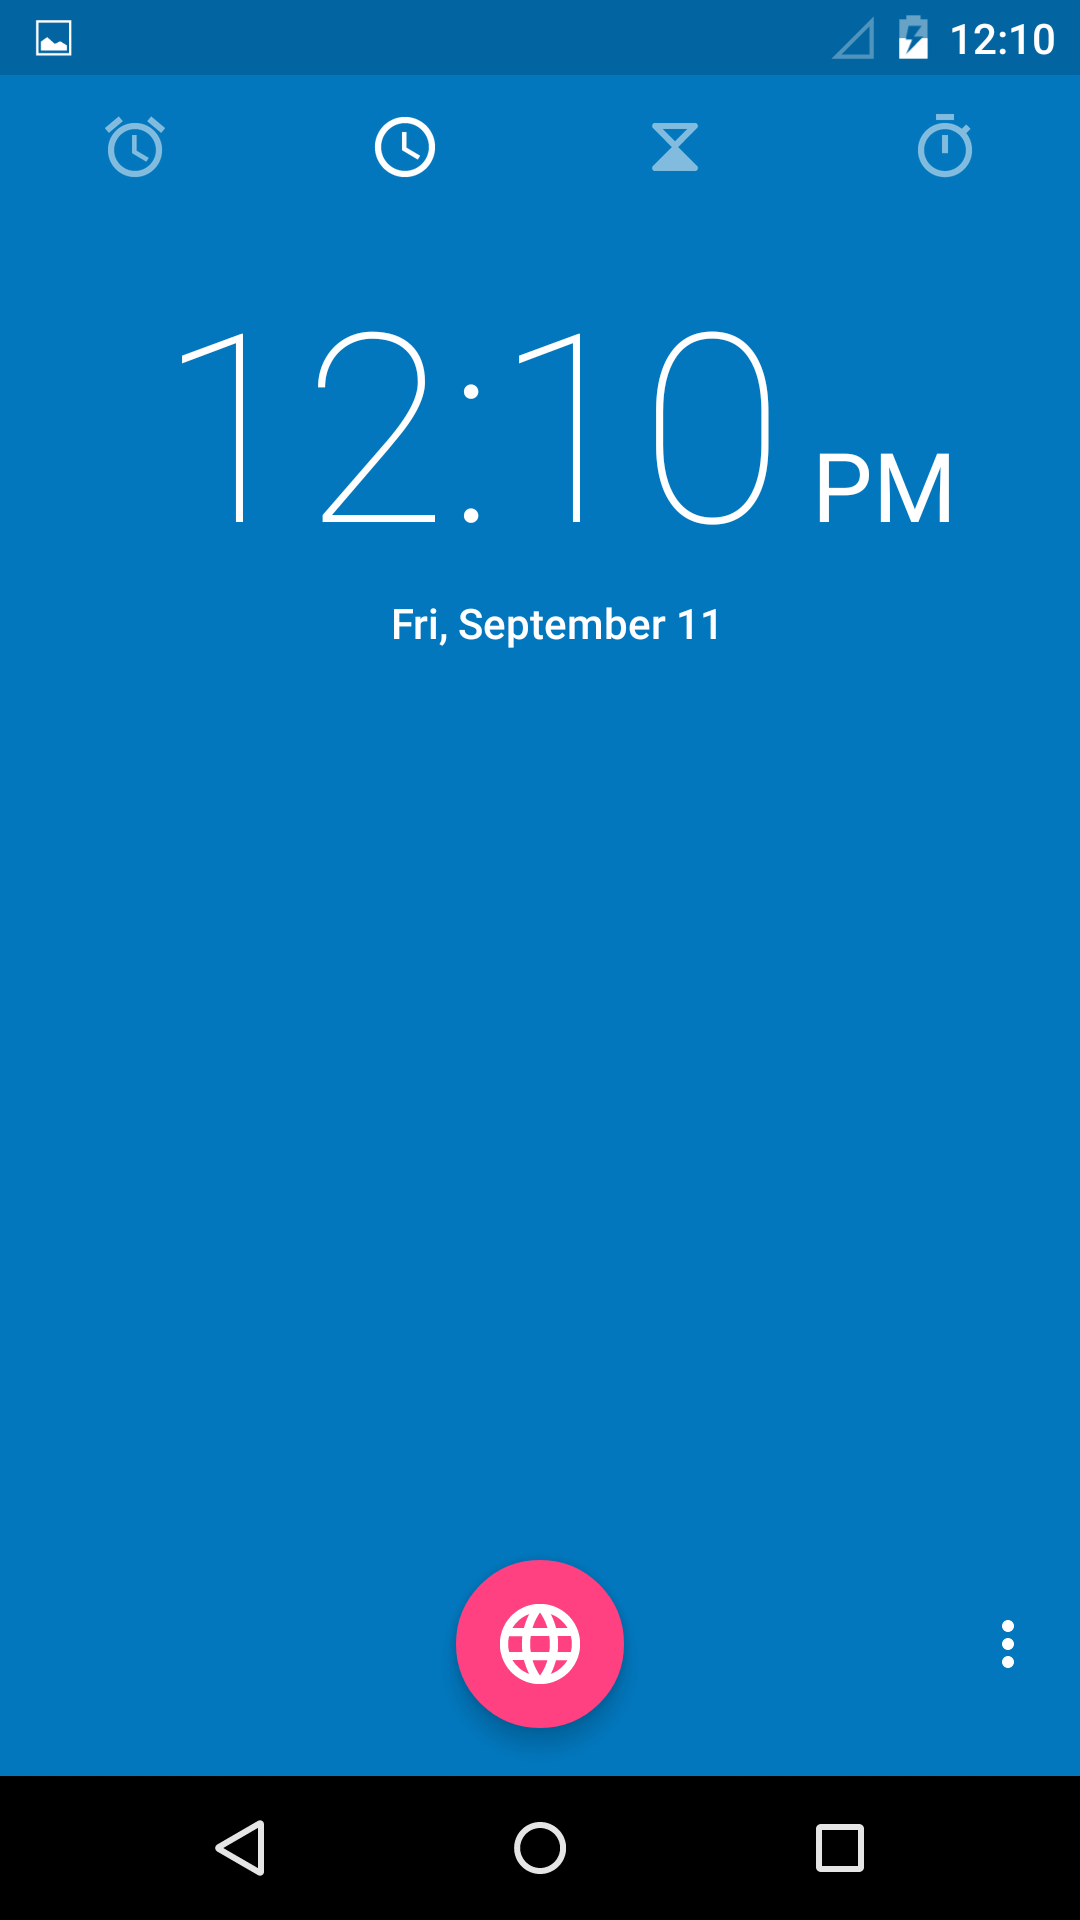 Xperia Z1 Android 5.0 Lollipop AOSP ROM